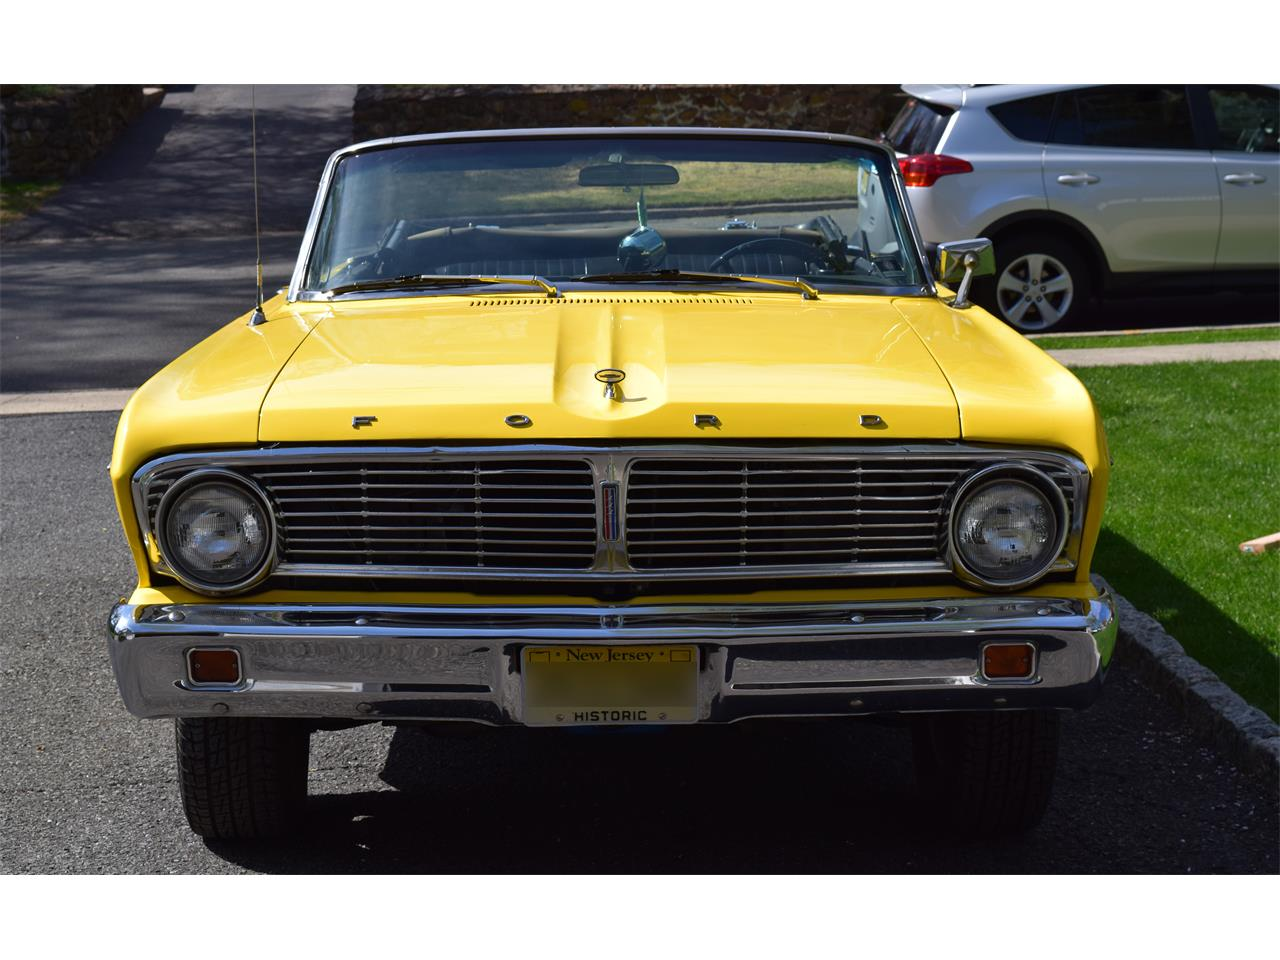 Large Picture of Classic 1965 Falcon Futura Offered by a Private Seller - QEVQ